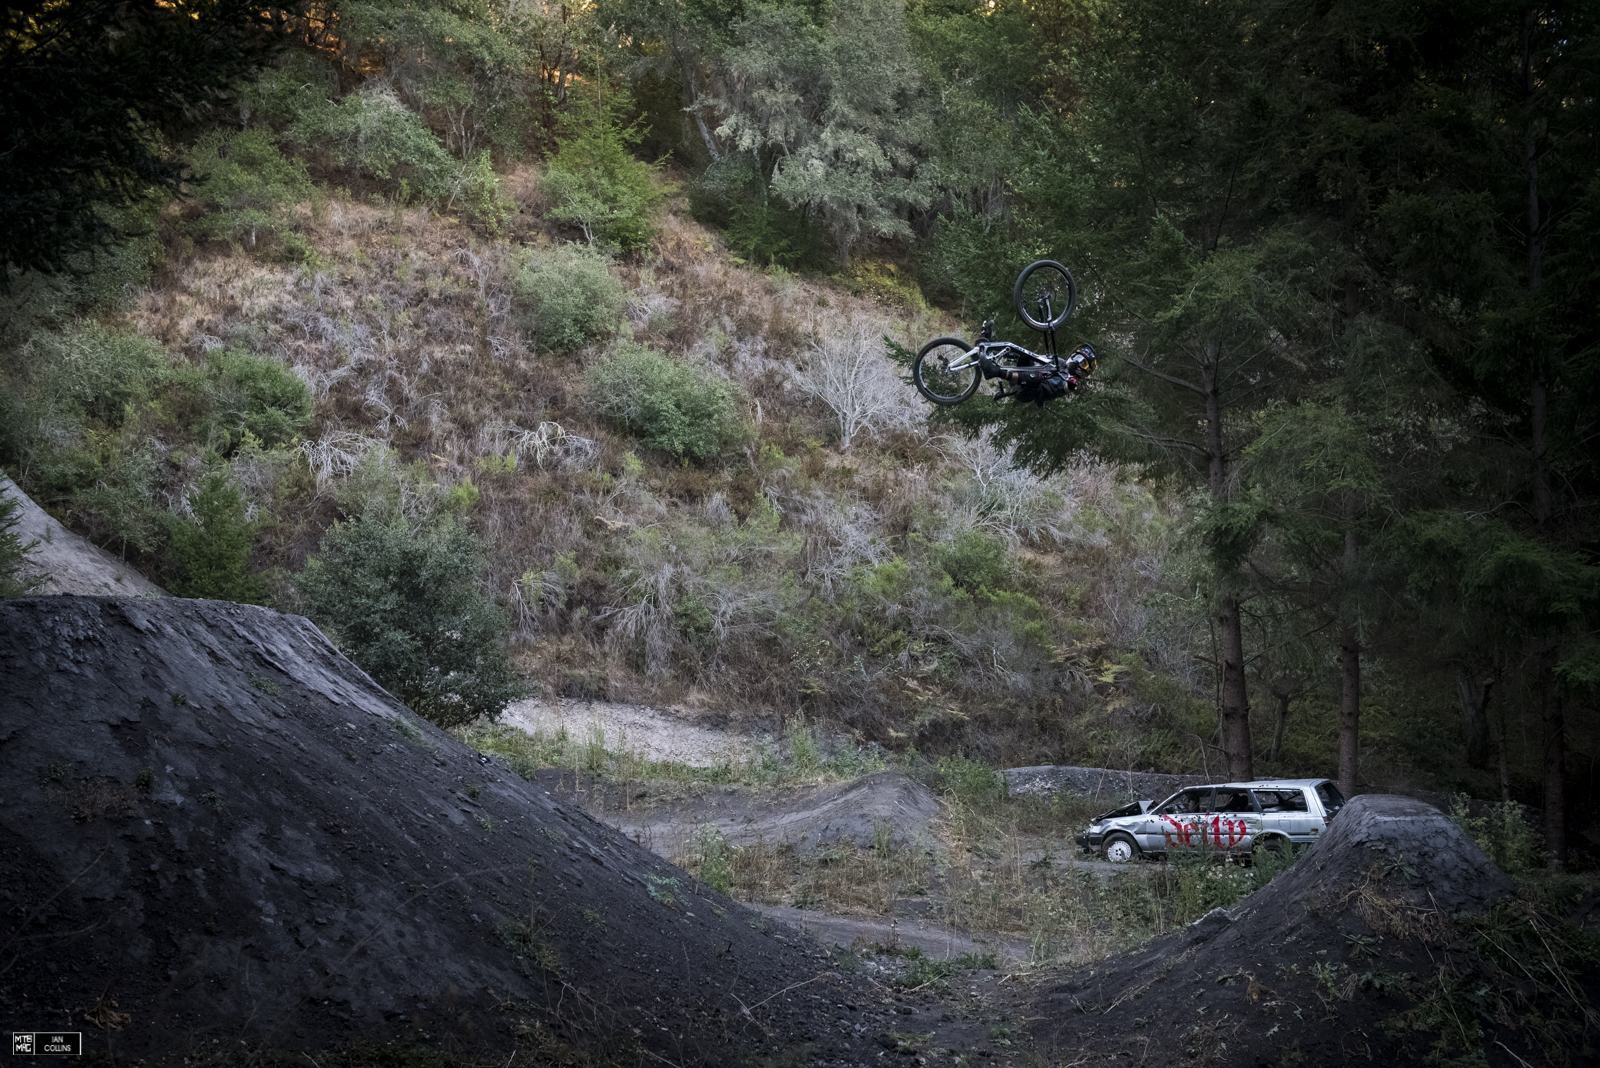 Andreu starting it off with an invert 360 table. It's not often you see that...especially on a DH bike.